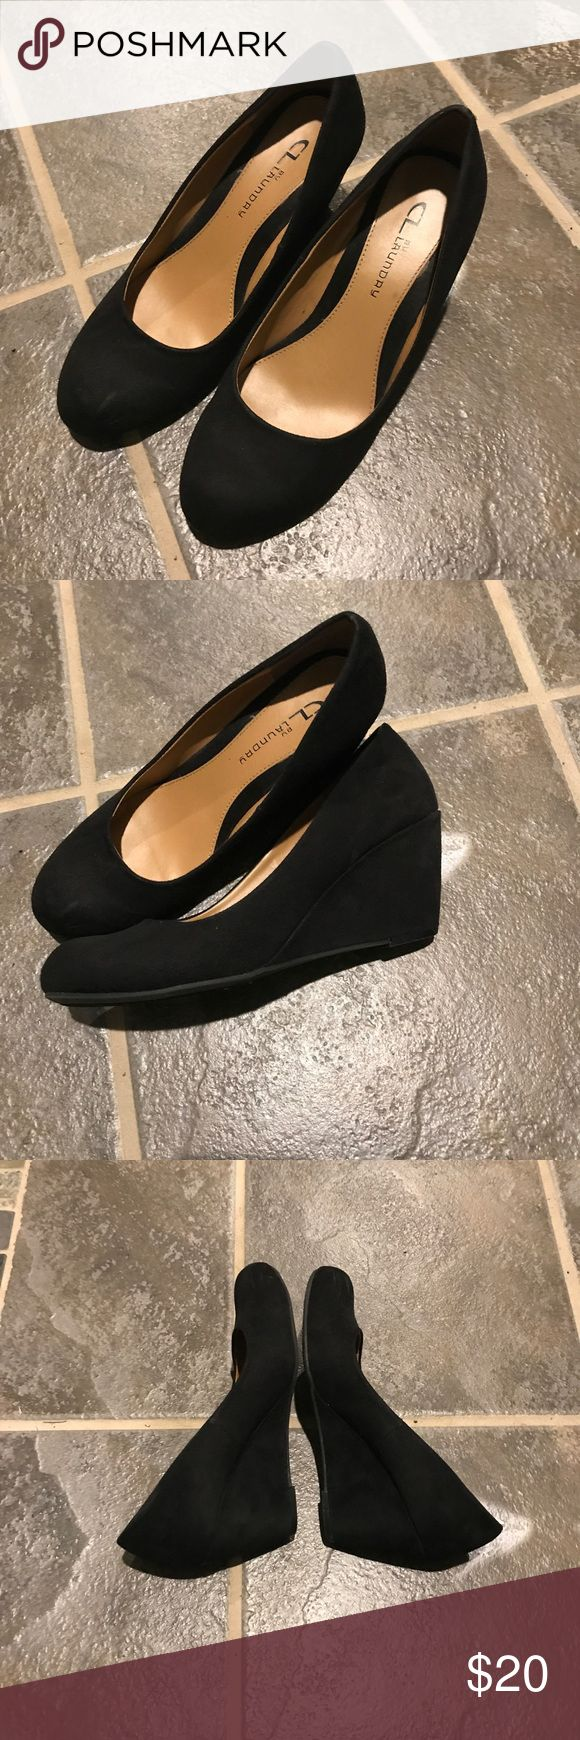 Black wedges Cute black wedges perfect for a night out or wedding. Worn for a few occasions. Great condition no signs of wear. Chinese Laundry Shoes Wedges